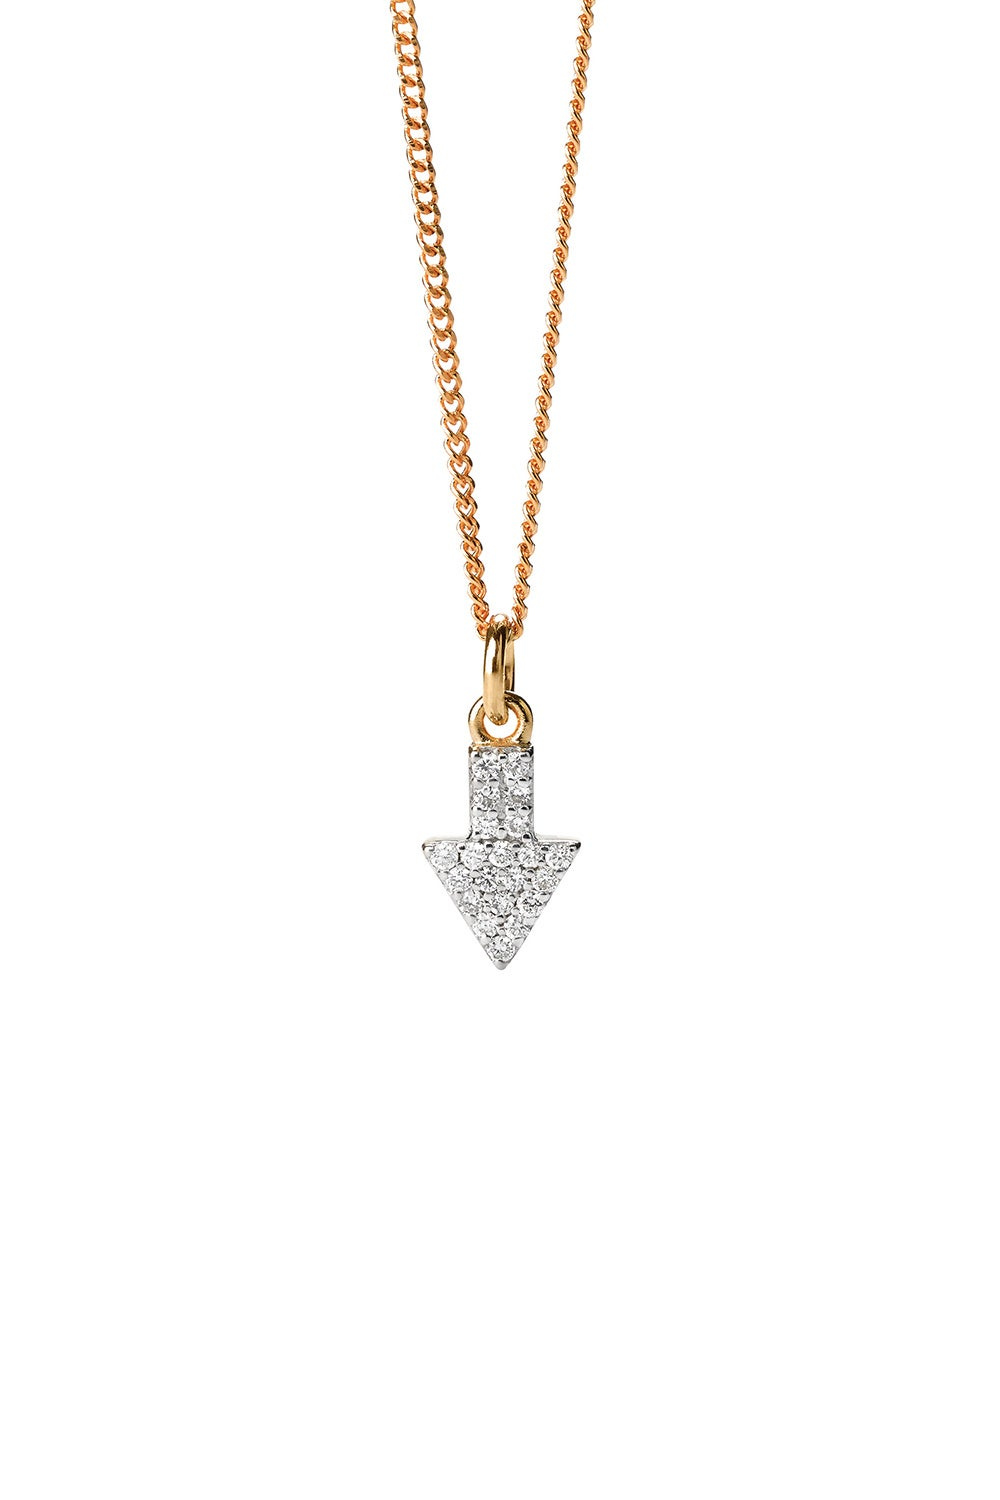 Superfine Arrow Necklace, 9ct Gold, .13ct Diamond